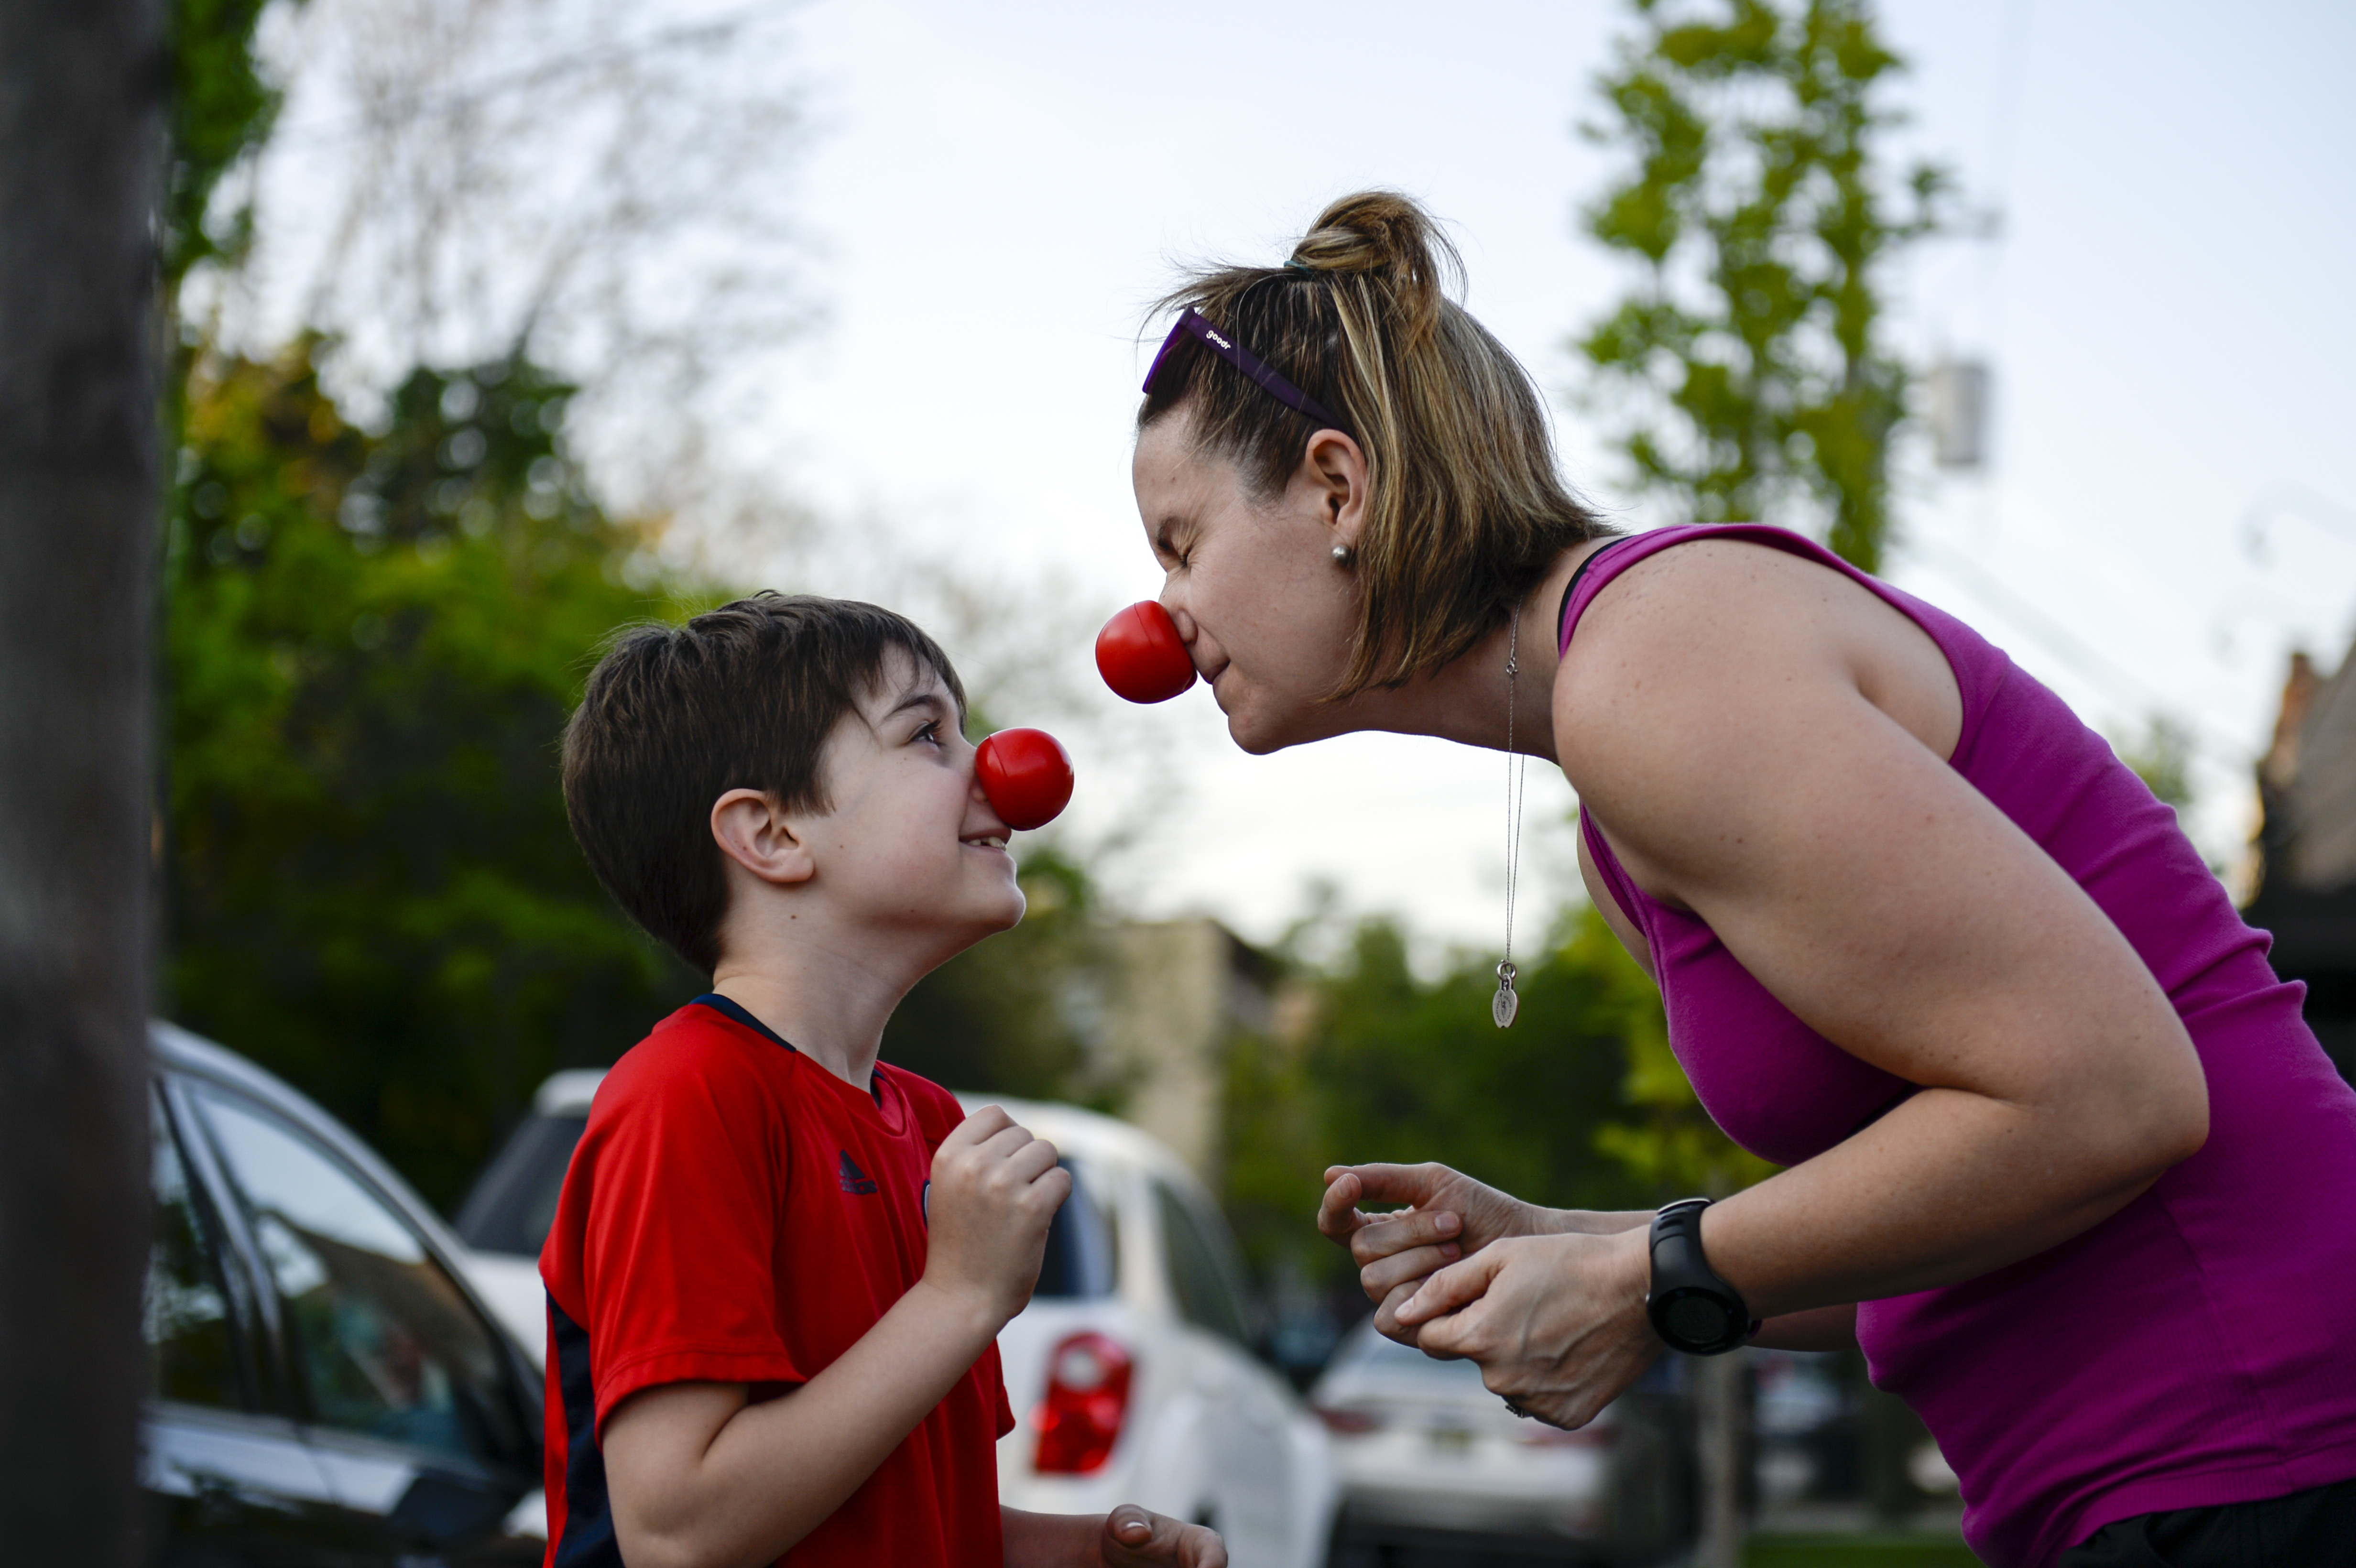 spread the red nose love